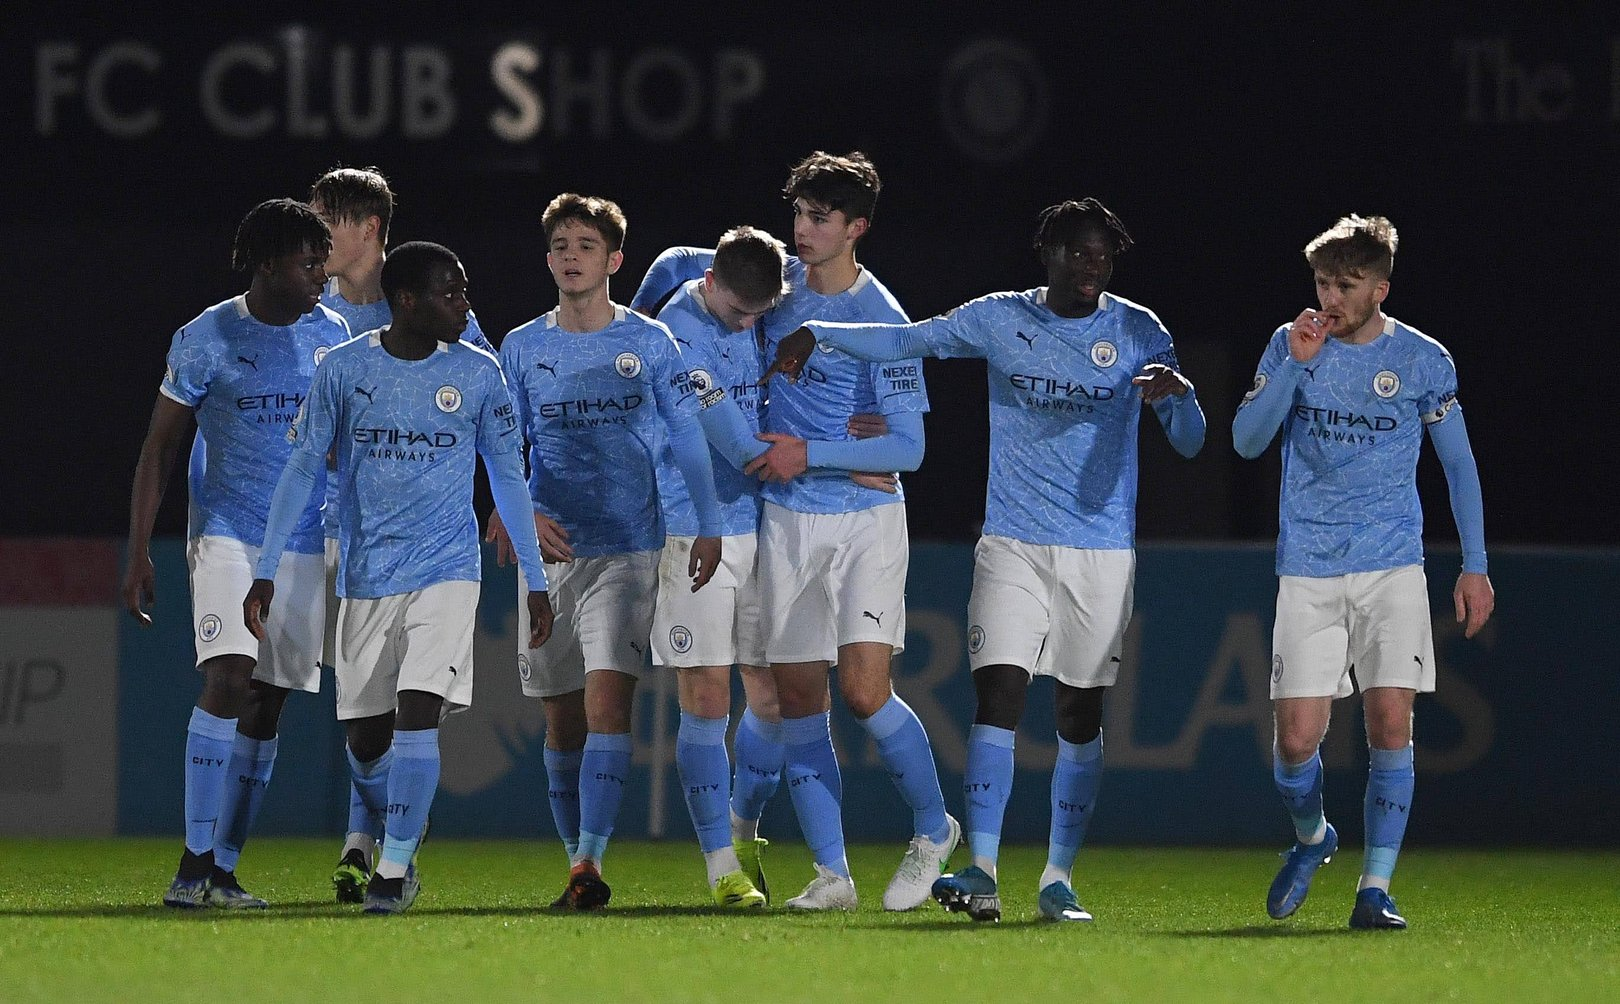 EDS trio staying grounded ahead of PL2 title charge